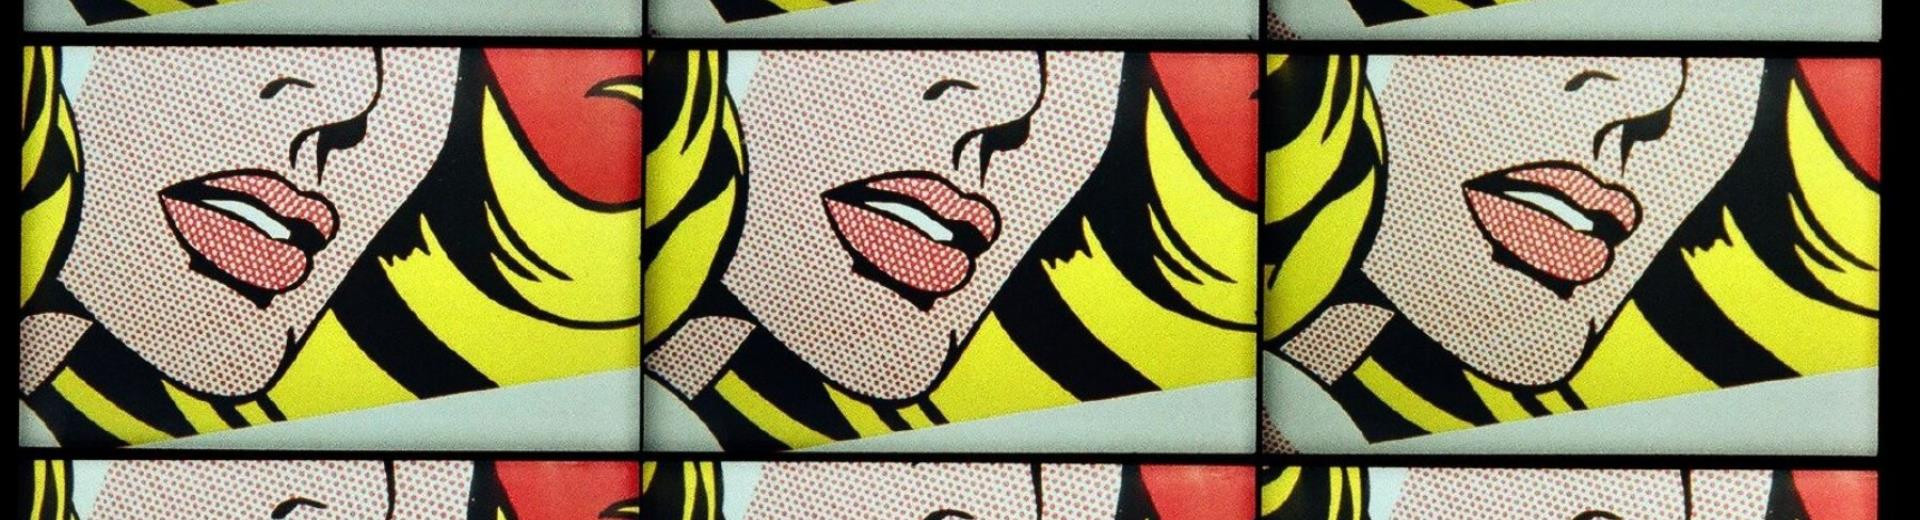 Would you like to visit the exhibition of Roy Lichtenstein at MUDEC and are you looking for a hotel at affordable rates? Choose Hotel Goldenmile Milan, comfortable 4-star in Trezzano sul Naviglio: for you up to 30% off with the offer Smart BWR events in Milan!